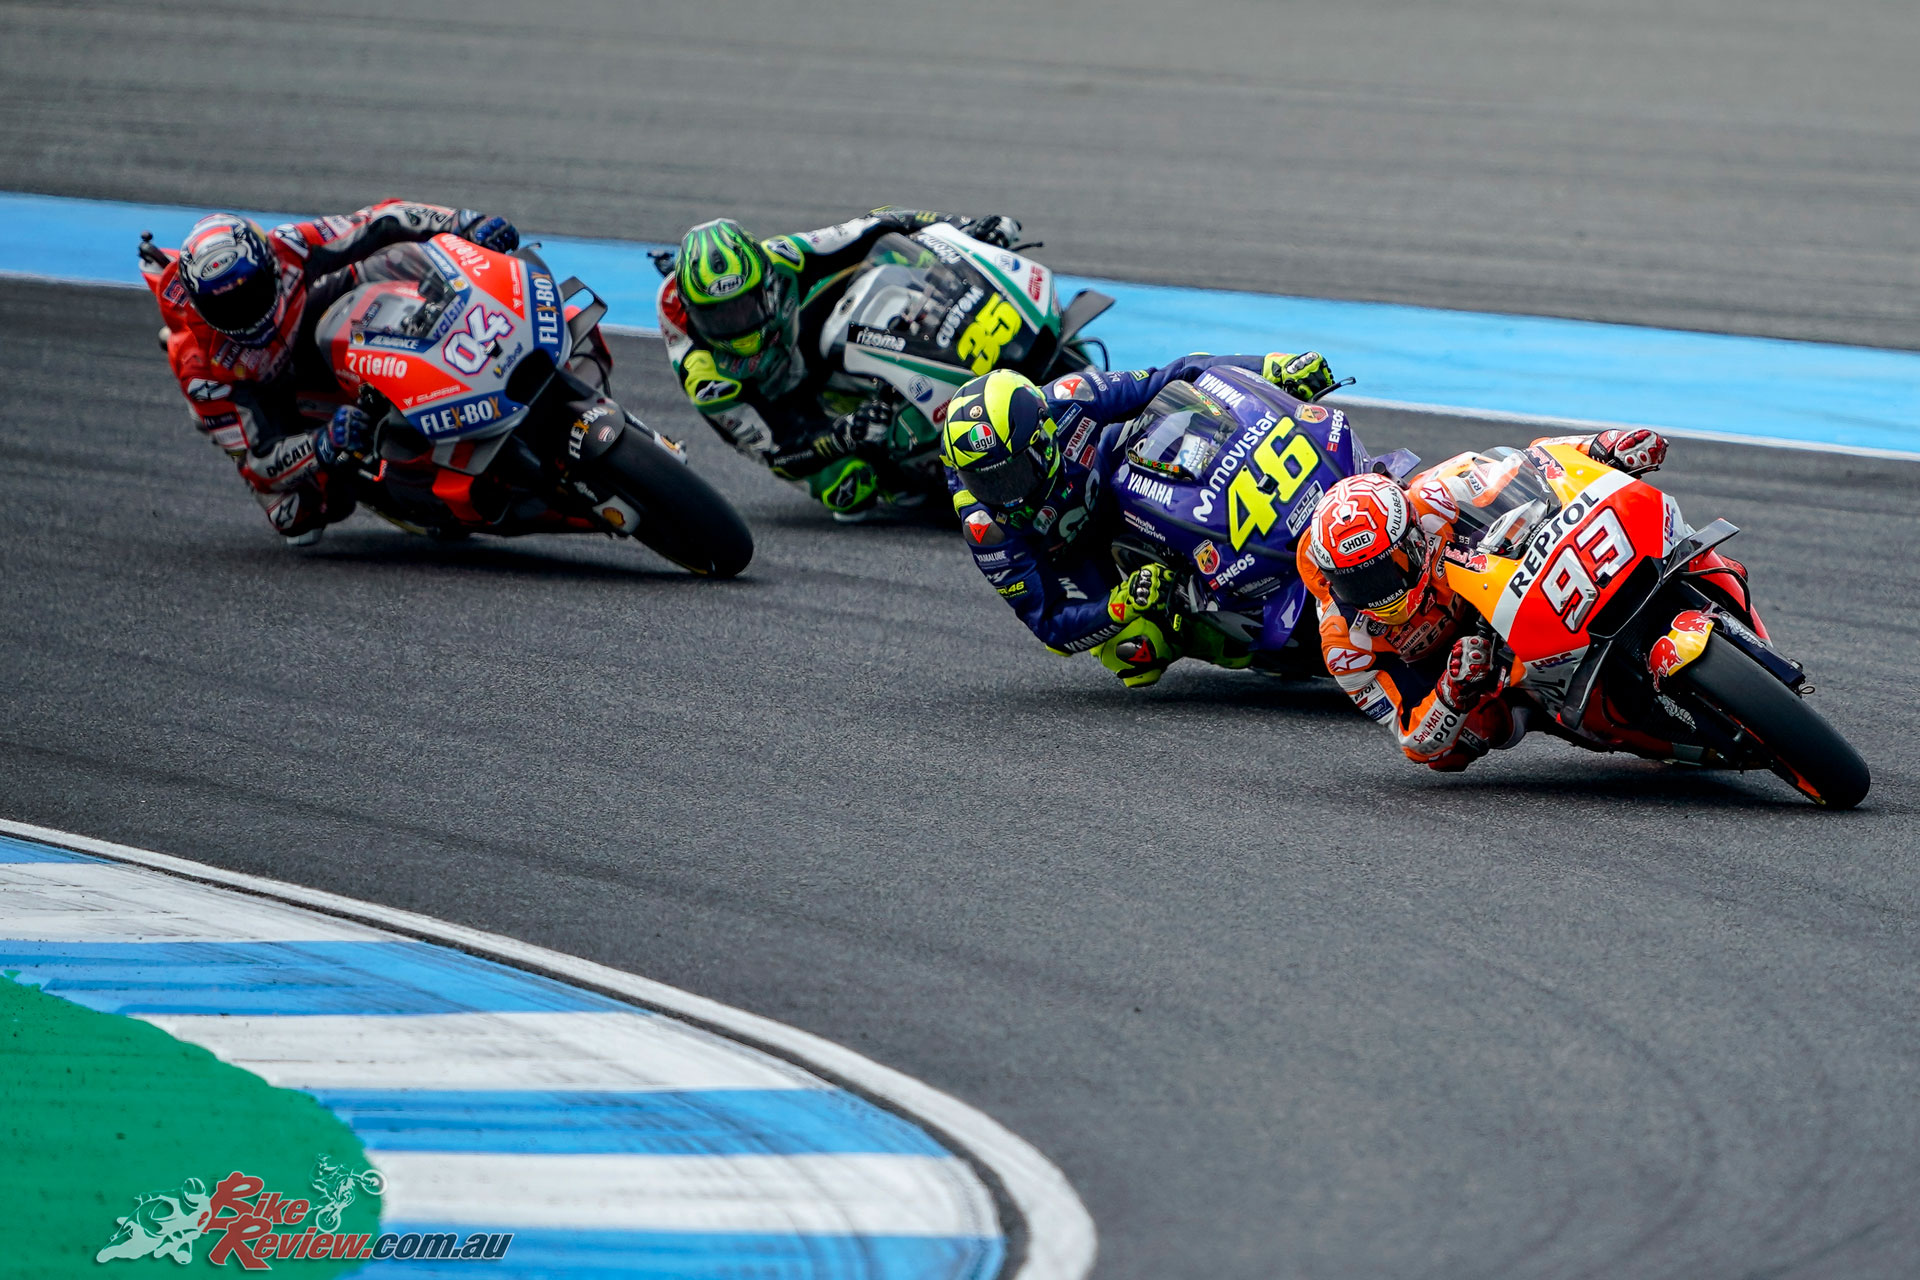 Marc Marquez in the lead